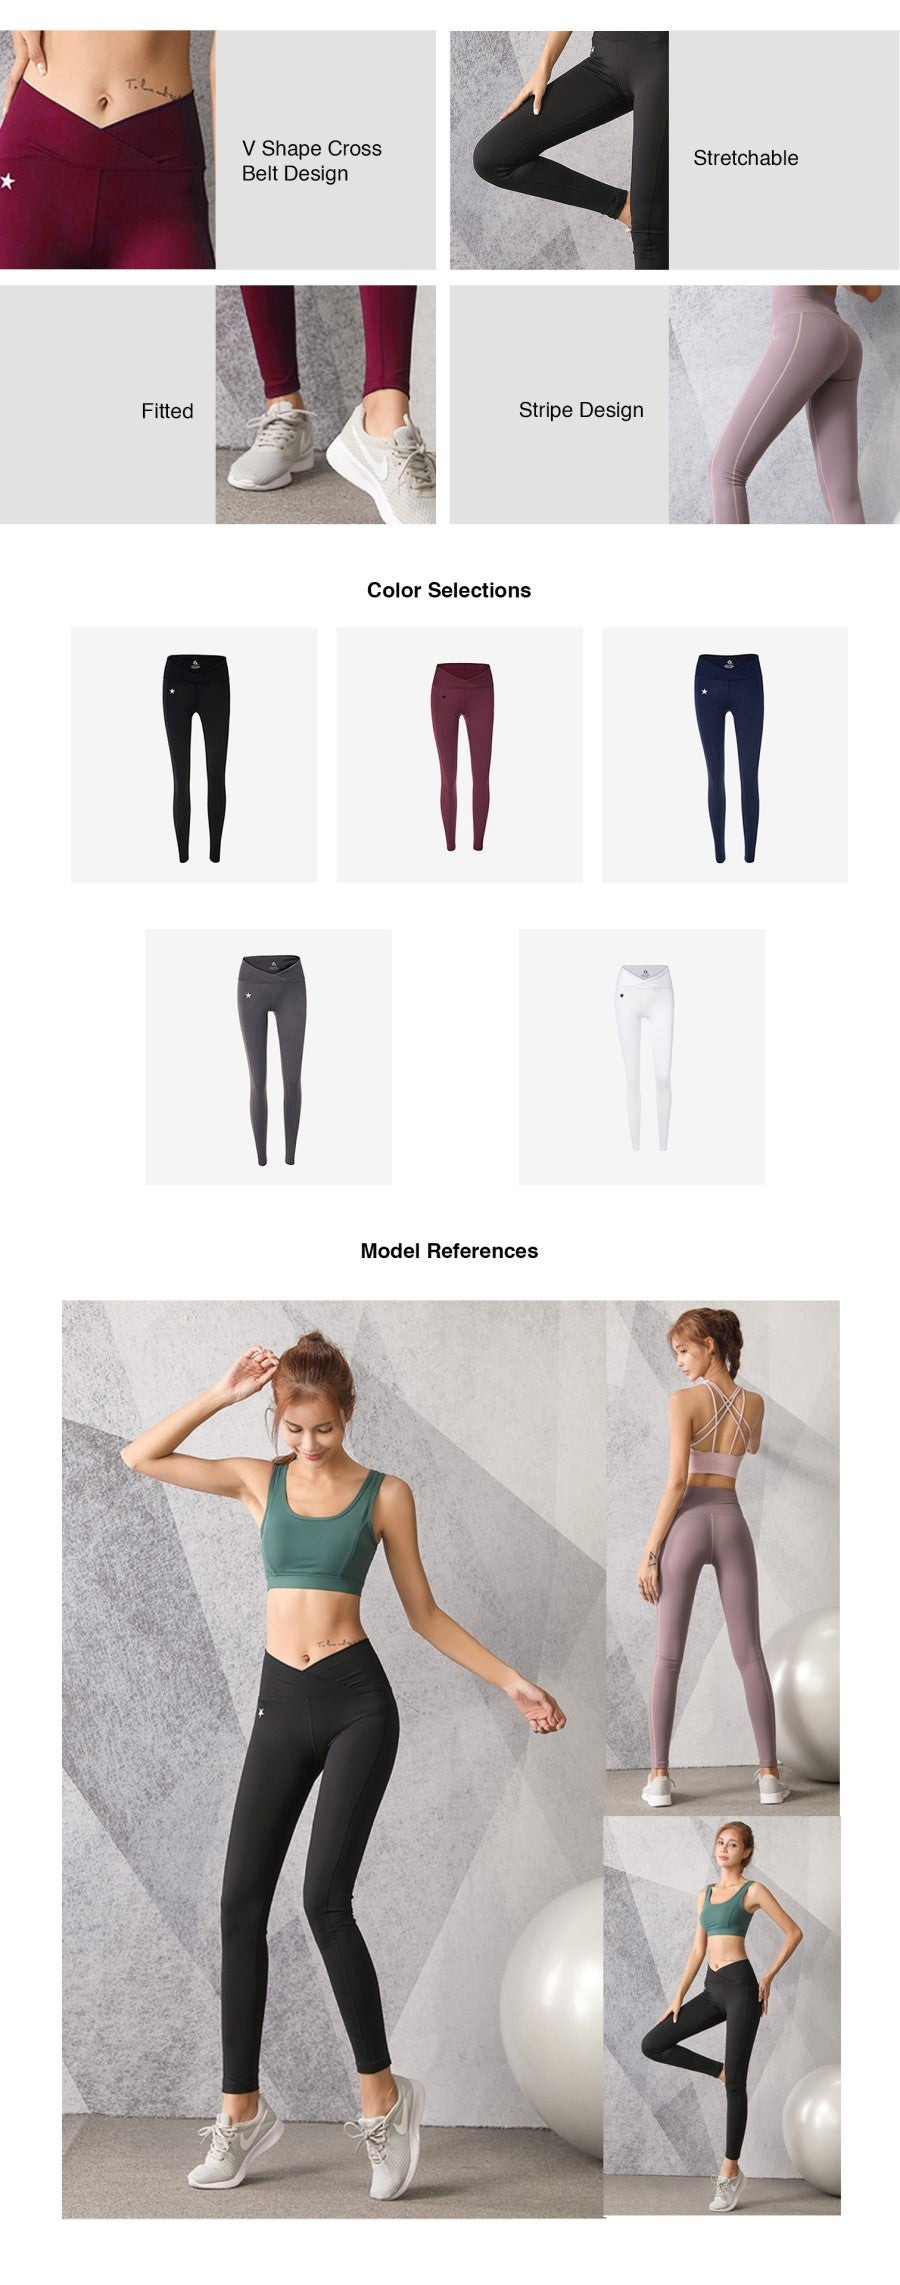 V-Shape Waistband Legging